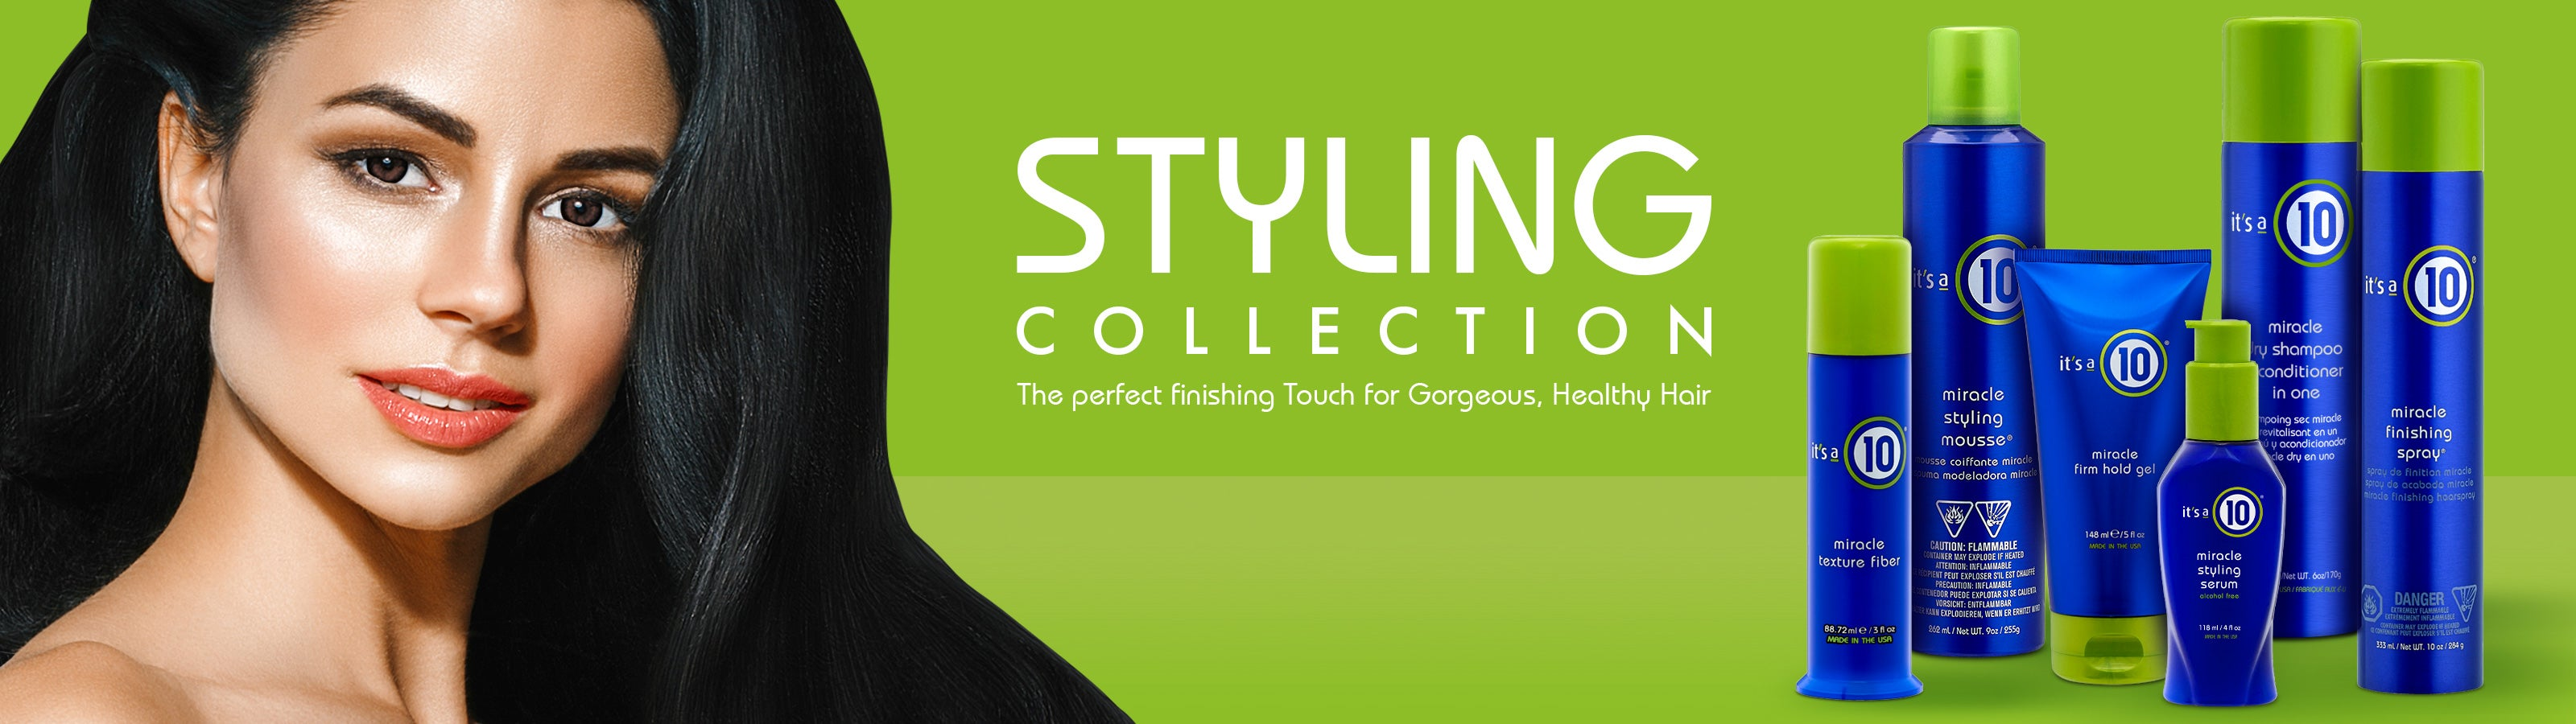 Styling Collection